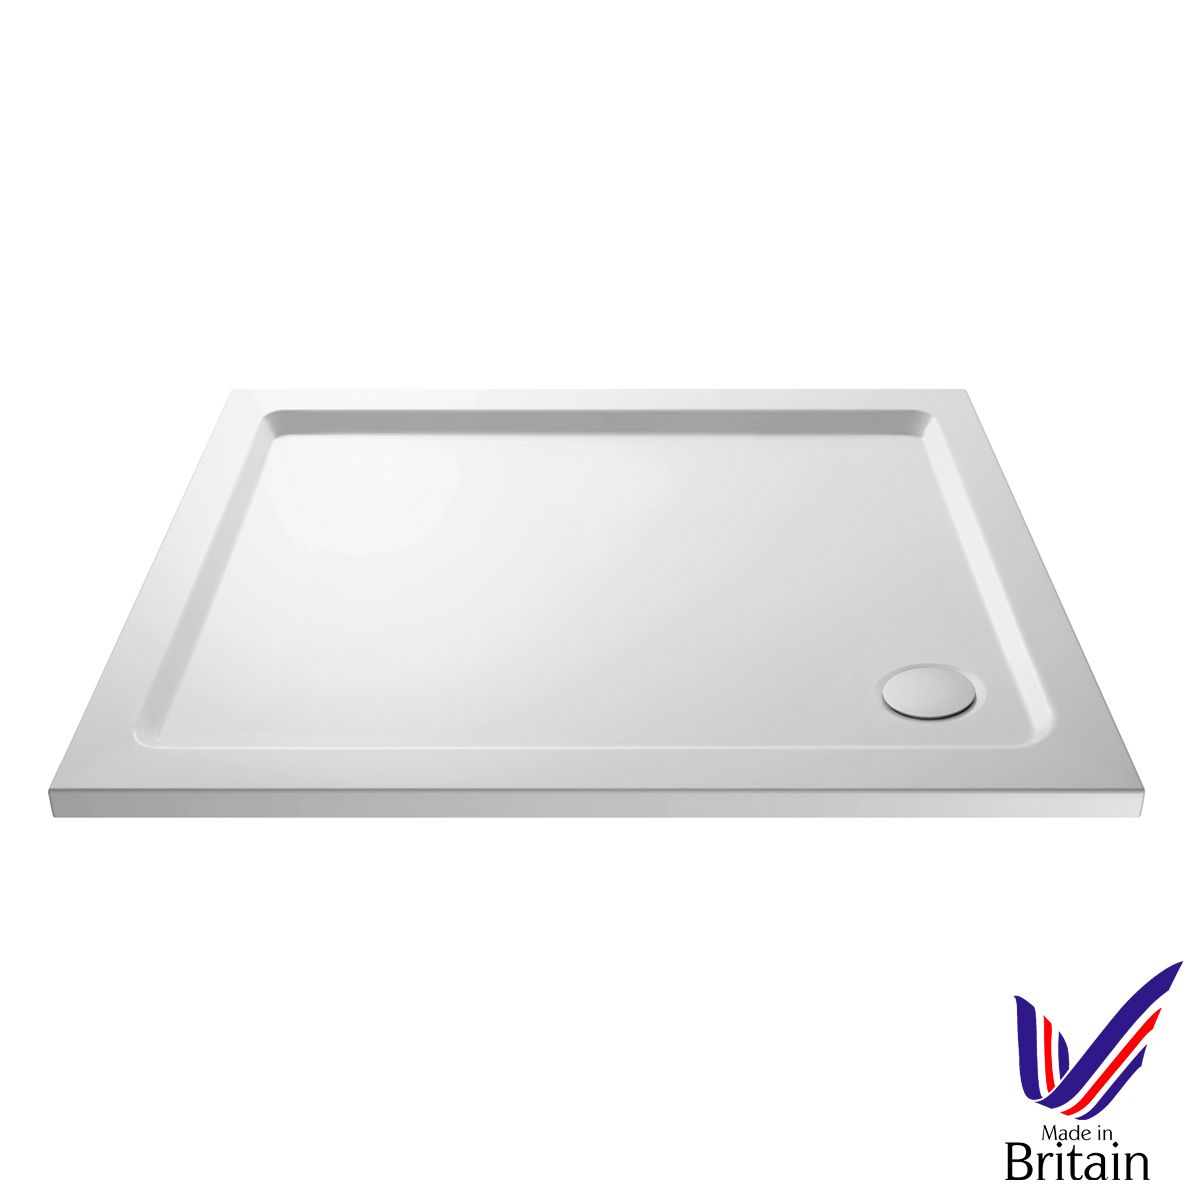 1000 x 900 Shower Tray Rectangular Low Profile by Pearlstone